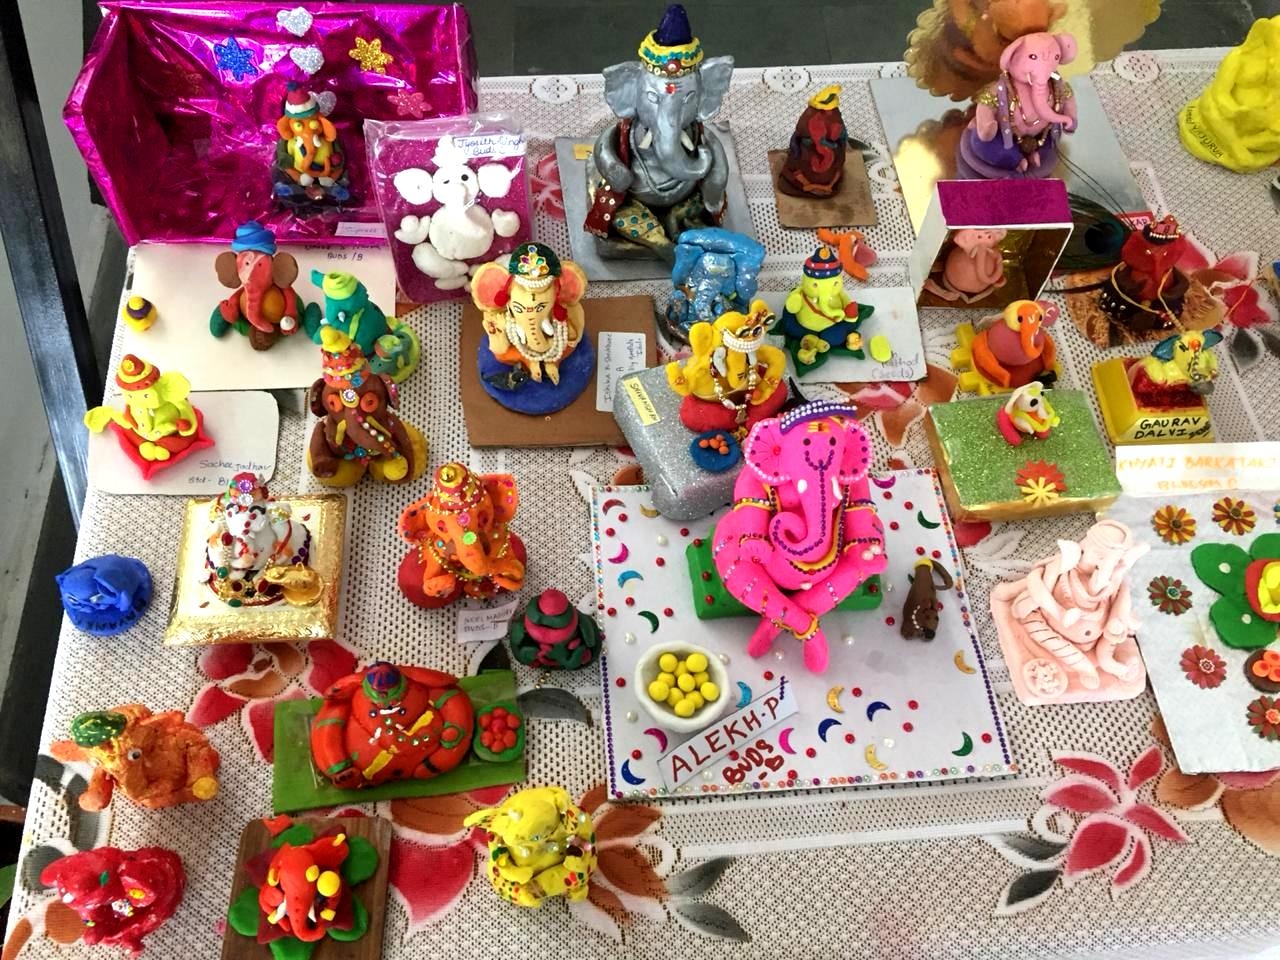 CLAY MODELLING ACTIVITY – PRE-PRIMARY